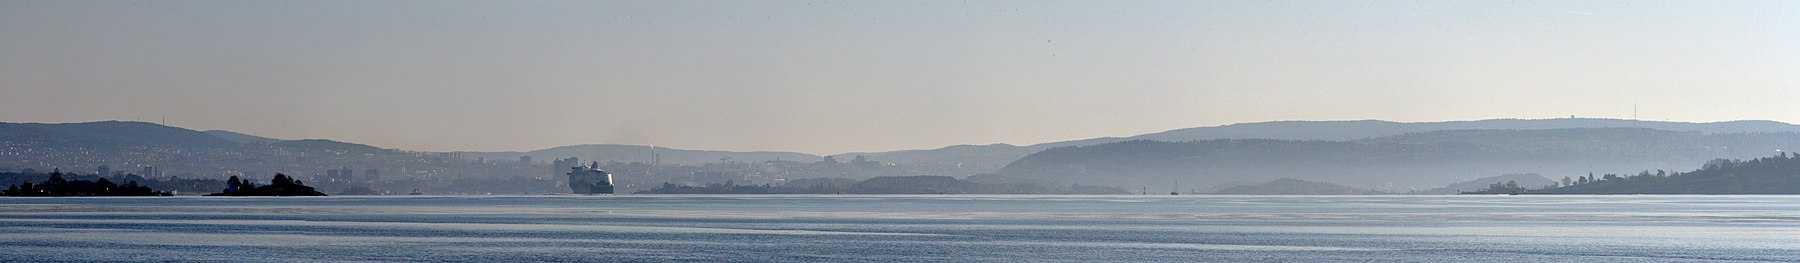 Snarøya, Oslo and Nesodden seen from Ostøya.jpg